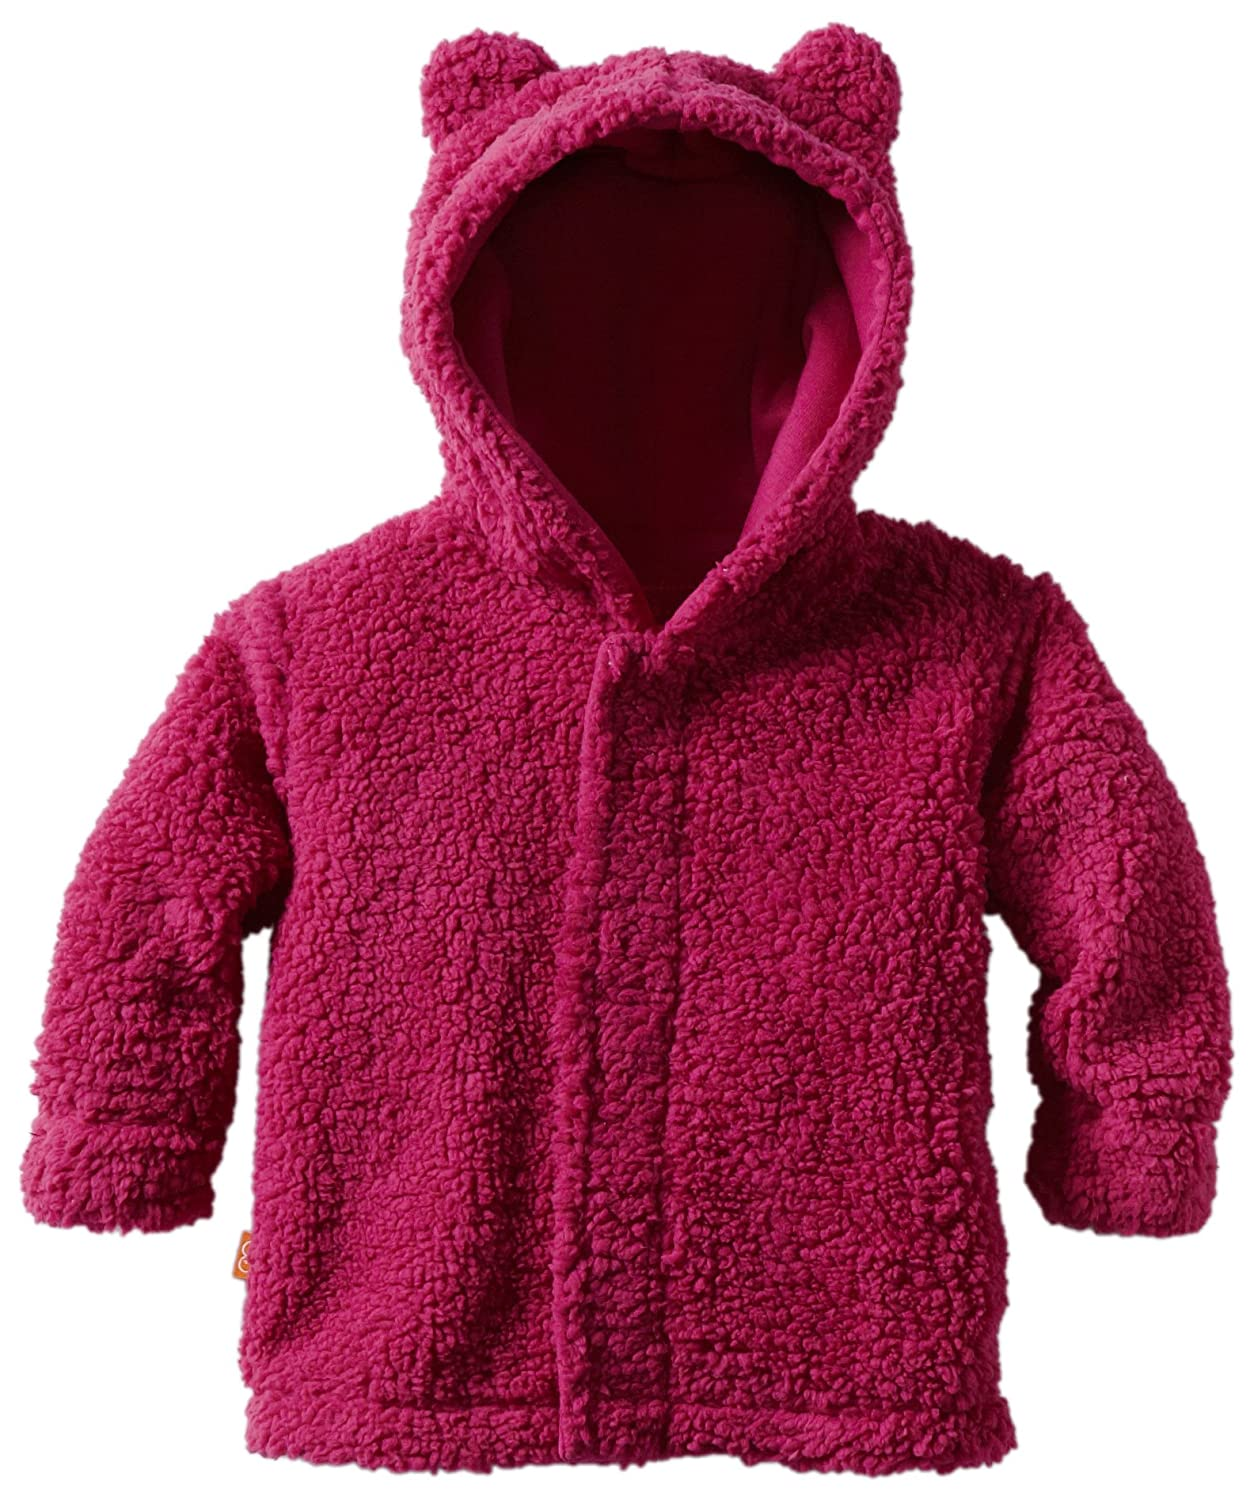 Magnificent Baby Girls' Magnetic Smart Little Bear Fleece Hooded Jacket Magnificent Baby Baby